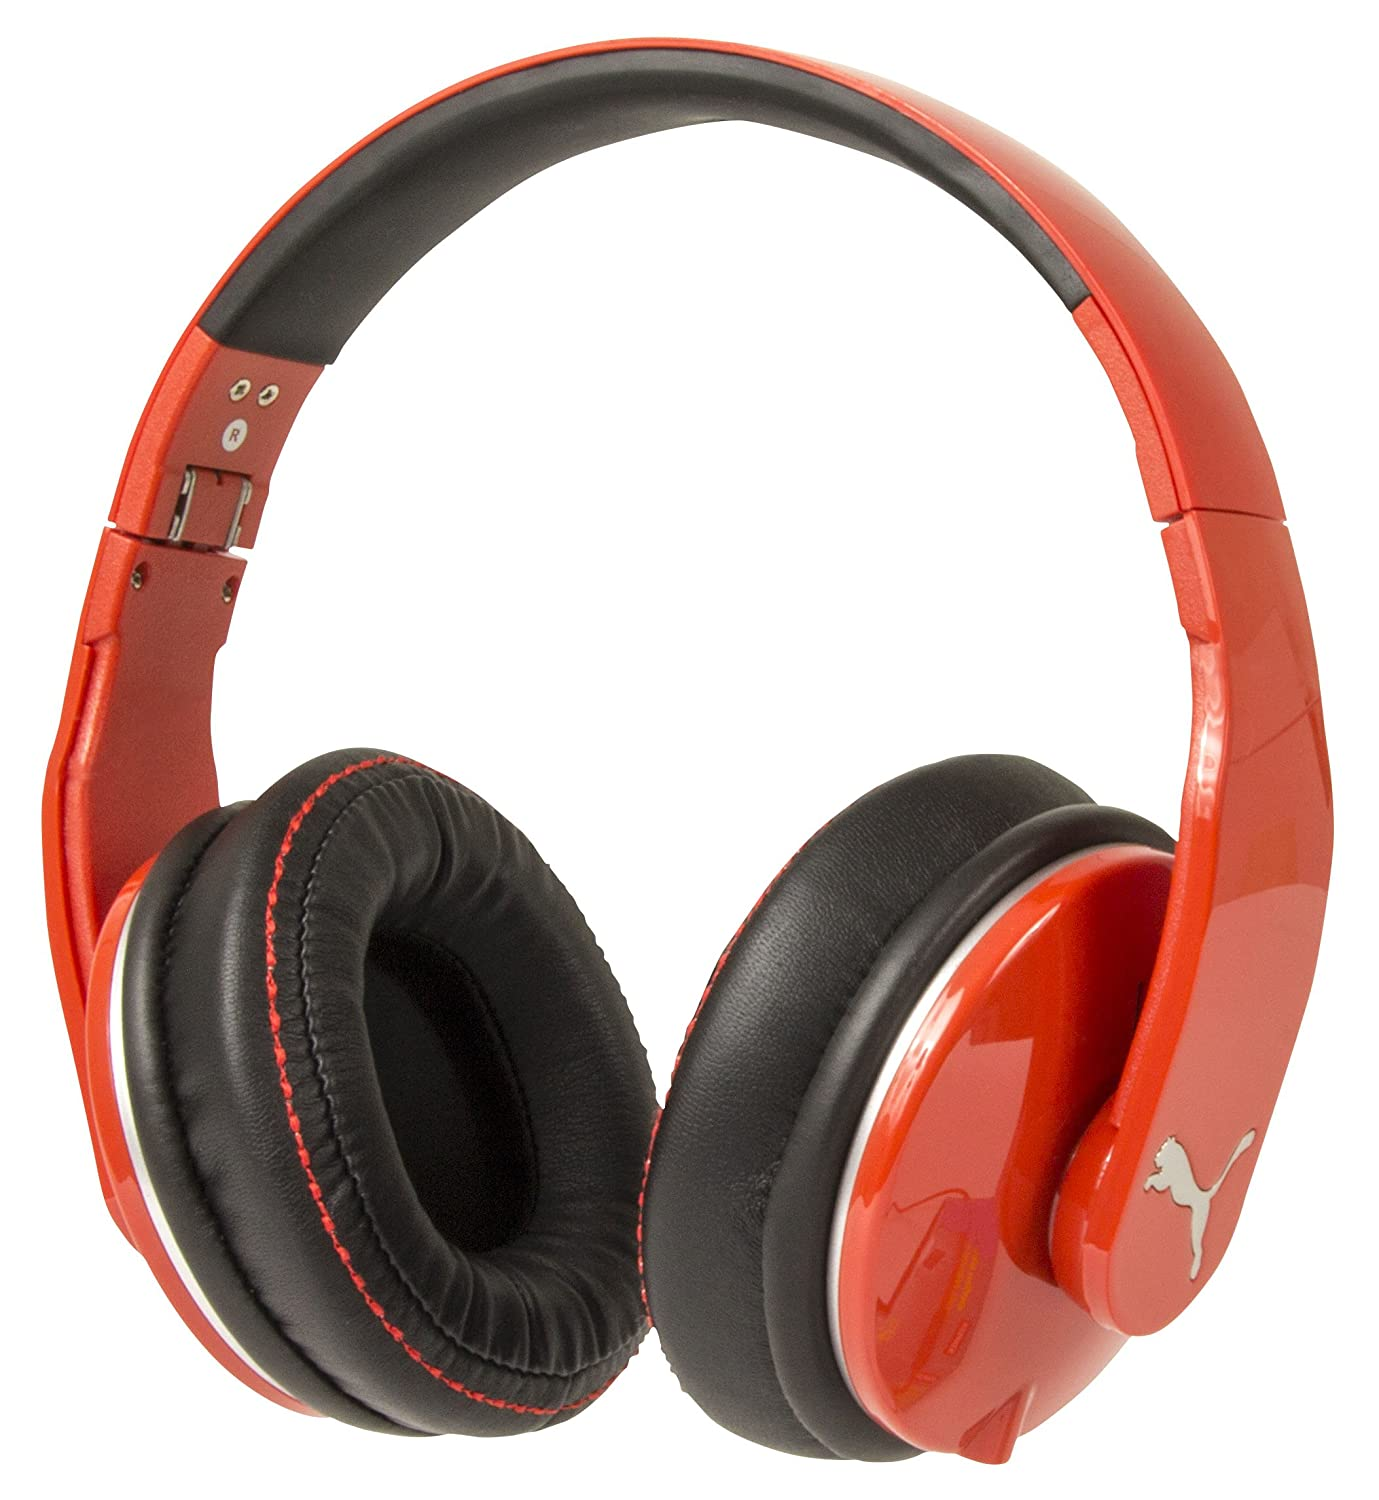 PUMA PMAD6010-ARED Vortice Over-Ear Headphone and Mic 1more mk801 over ear headphone with mic and remote for android and ios